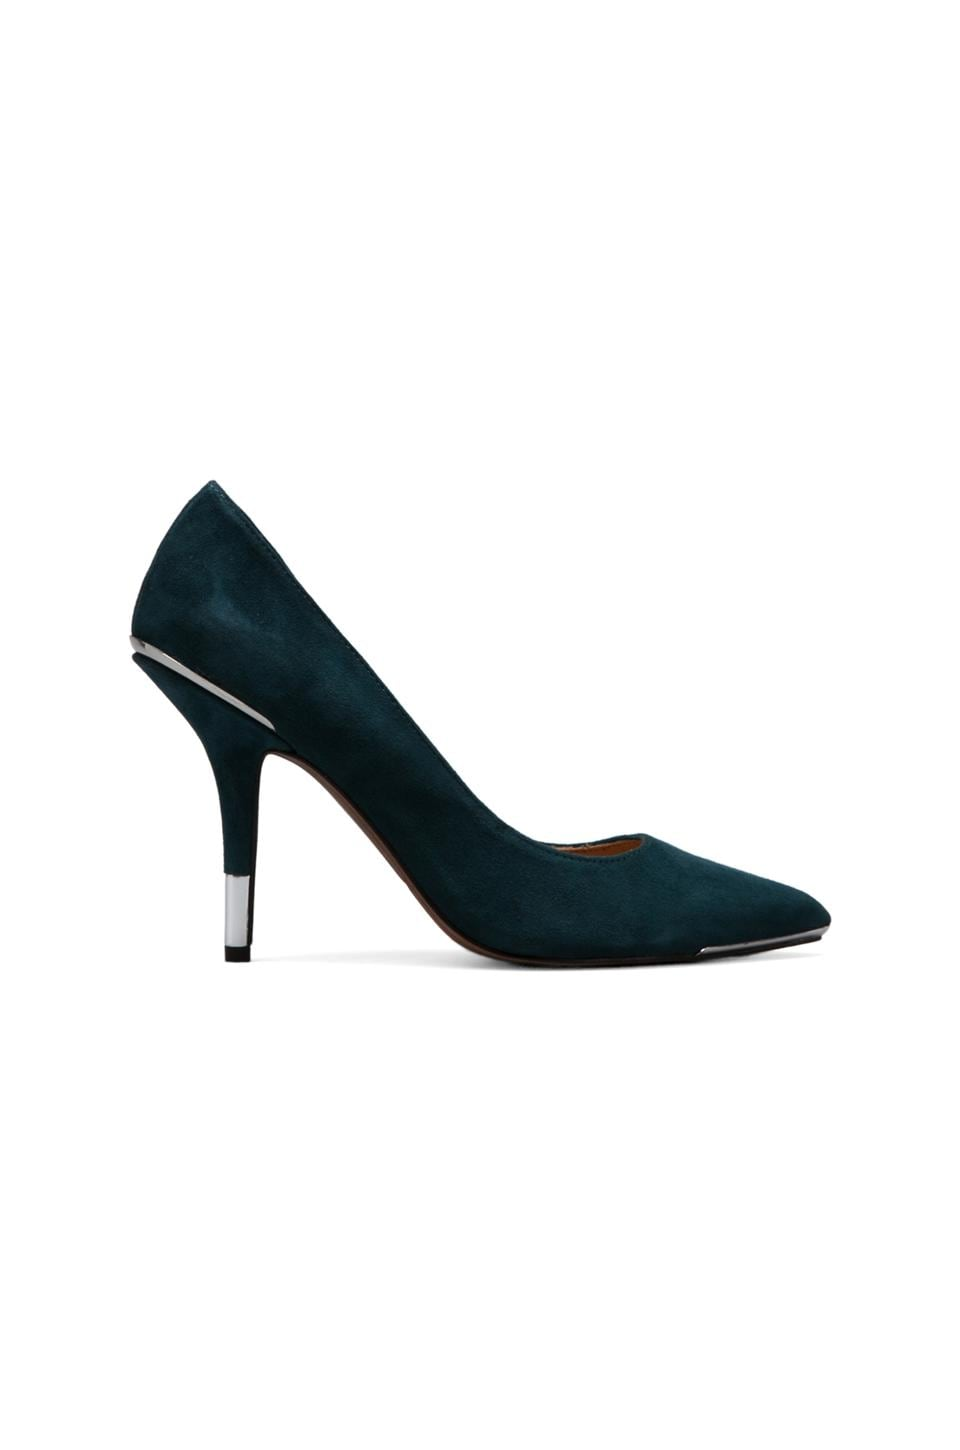 Dolce Vita Yani Pump in Midnight